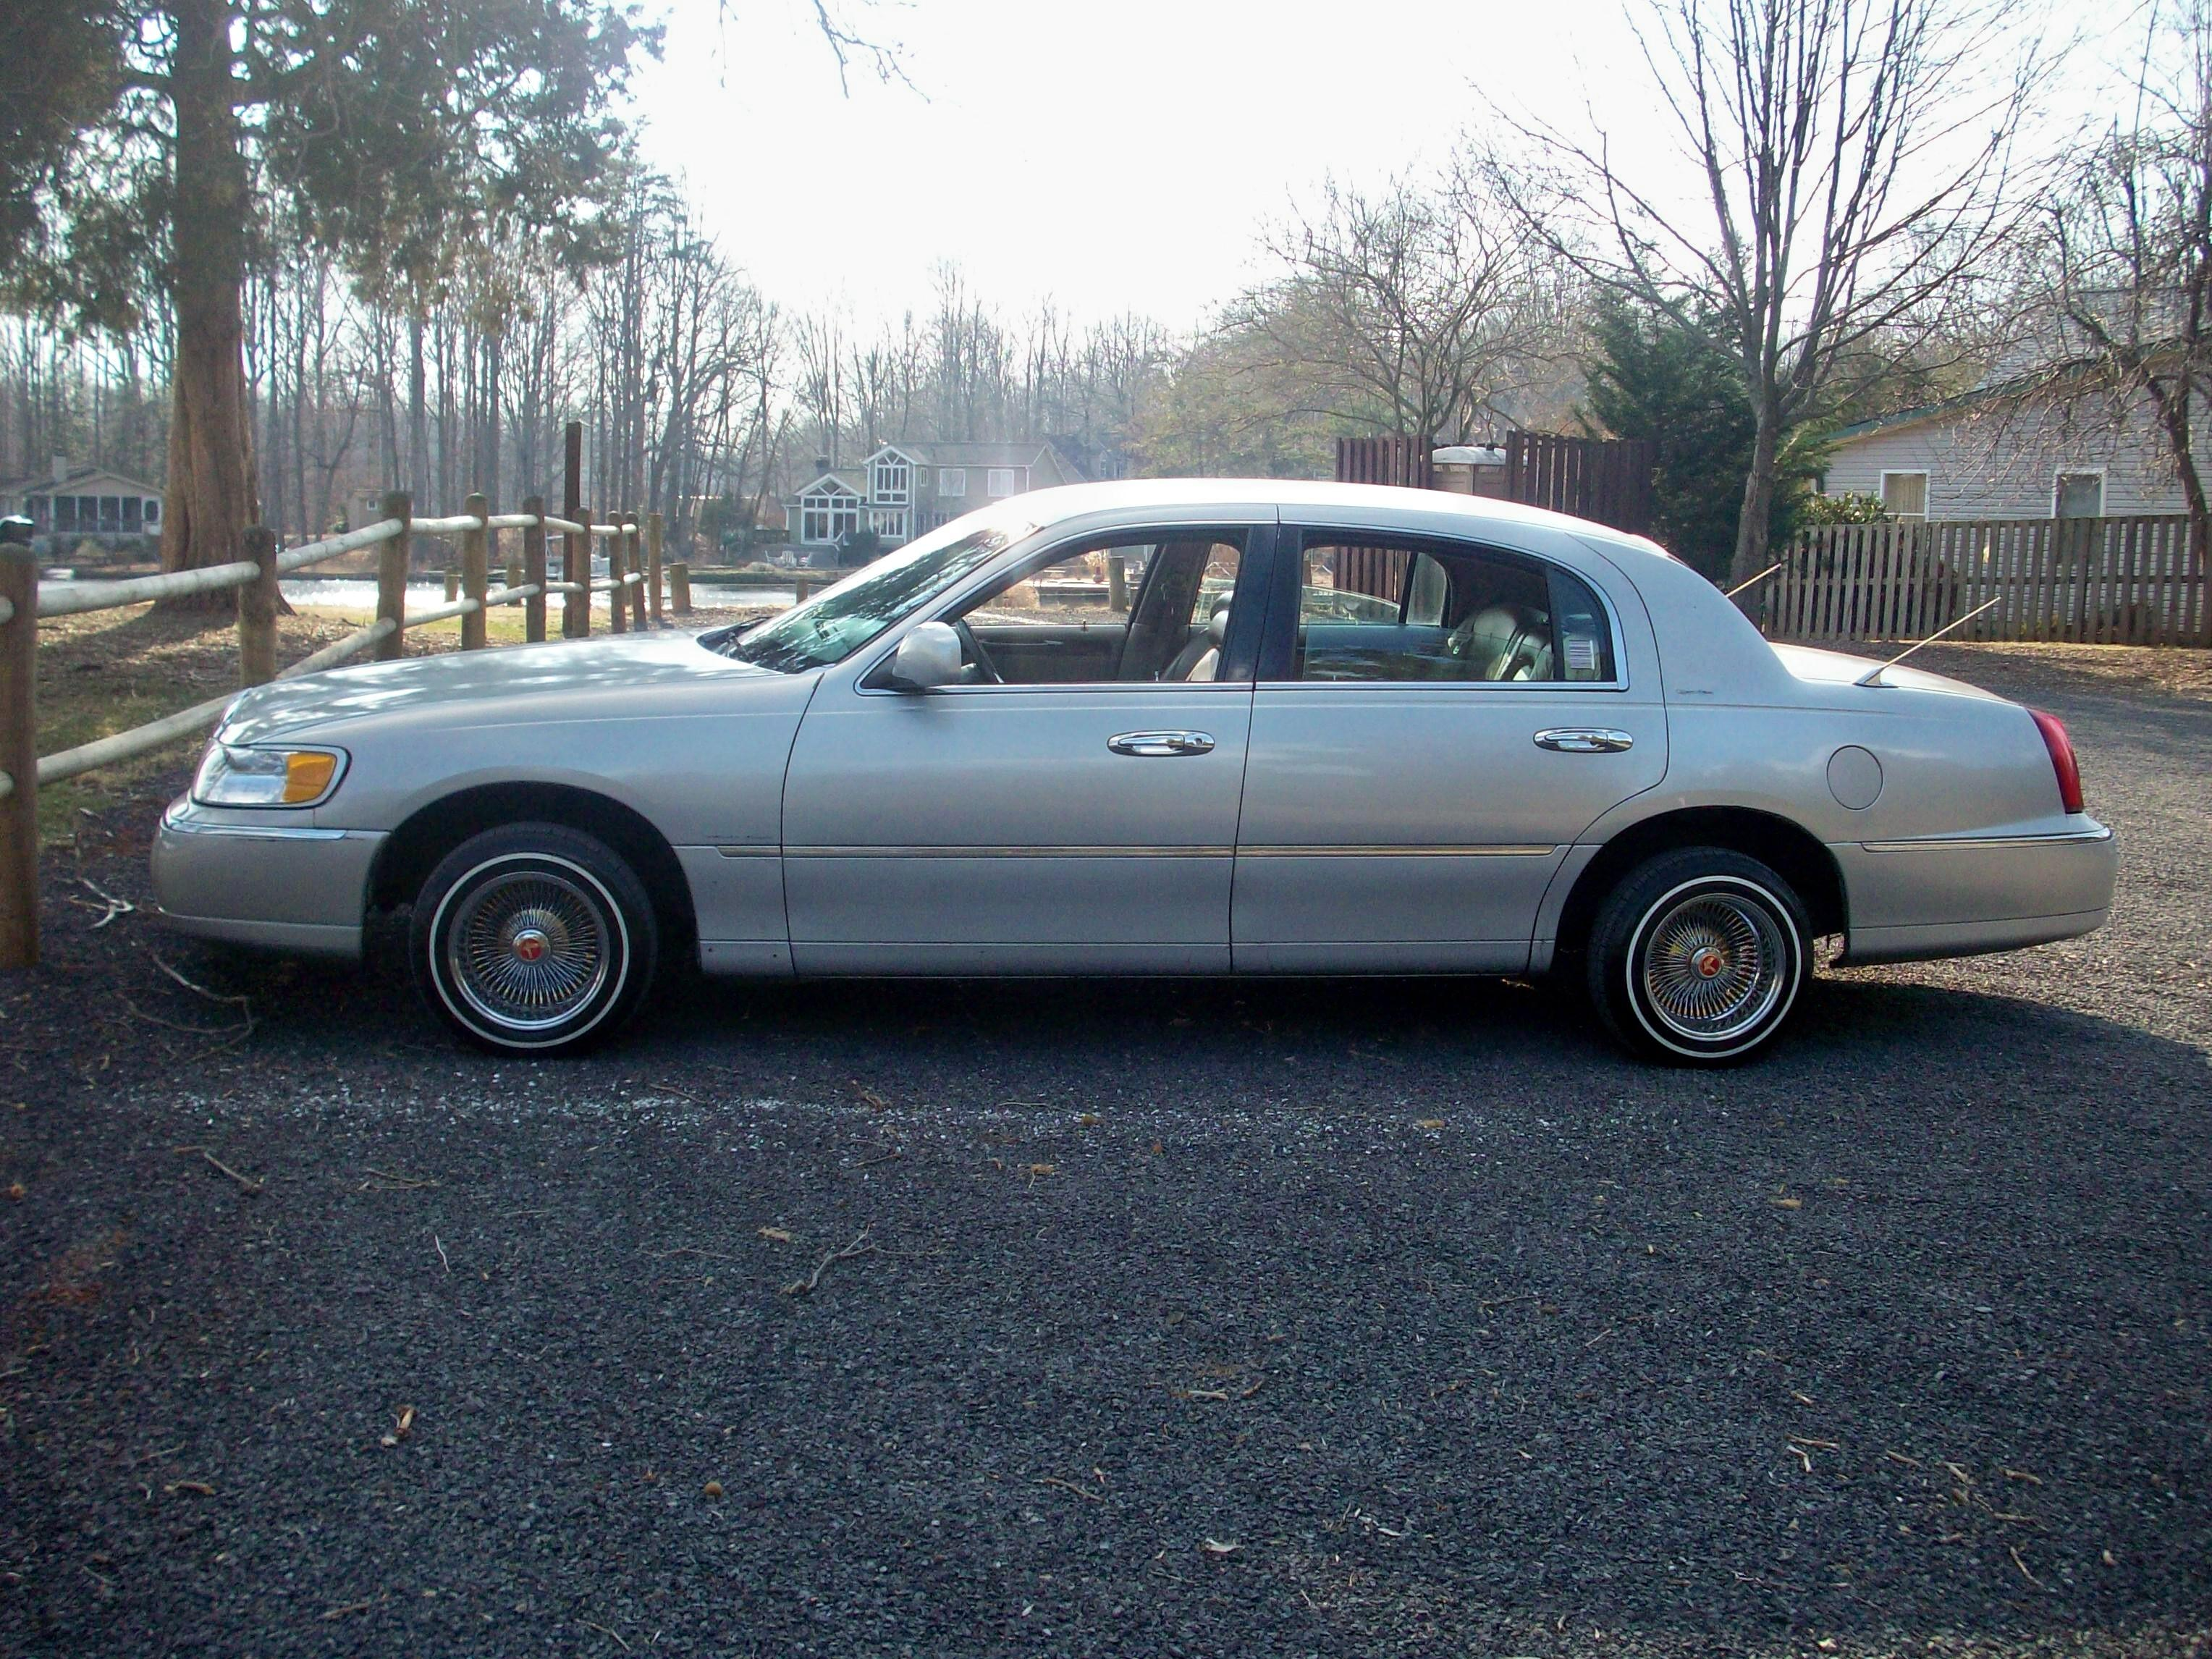 Dayton Wire Wheels Auto Parts For Lincoln Town Car Auto Parts At